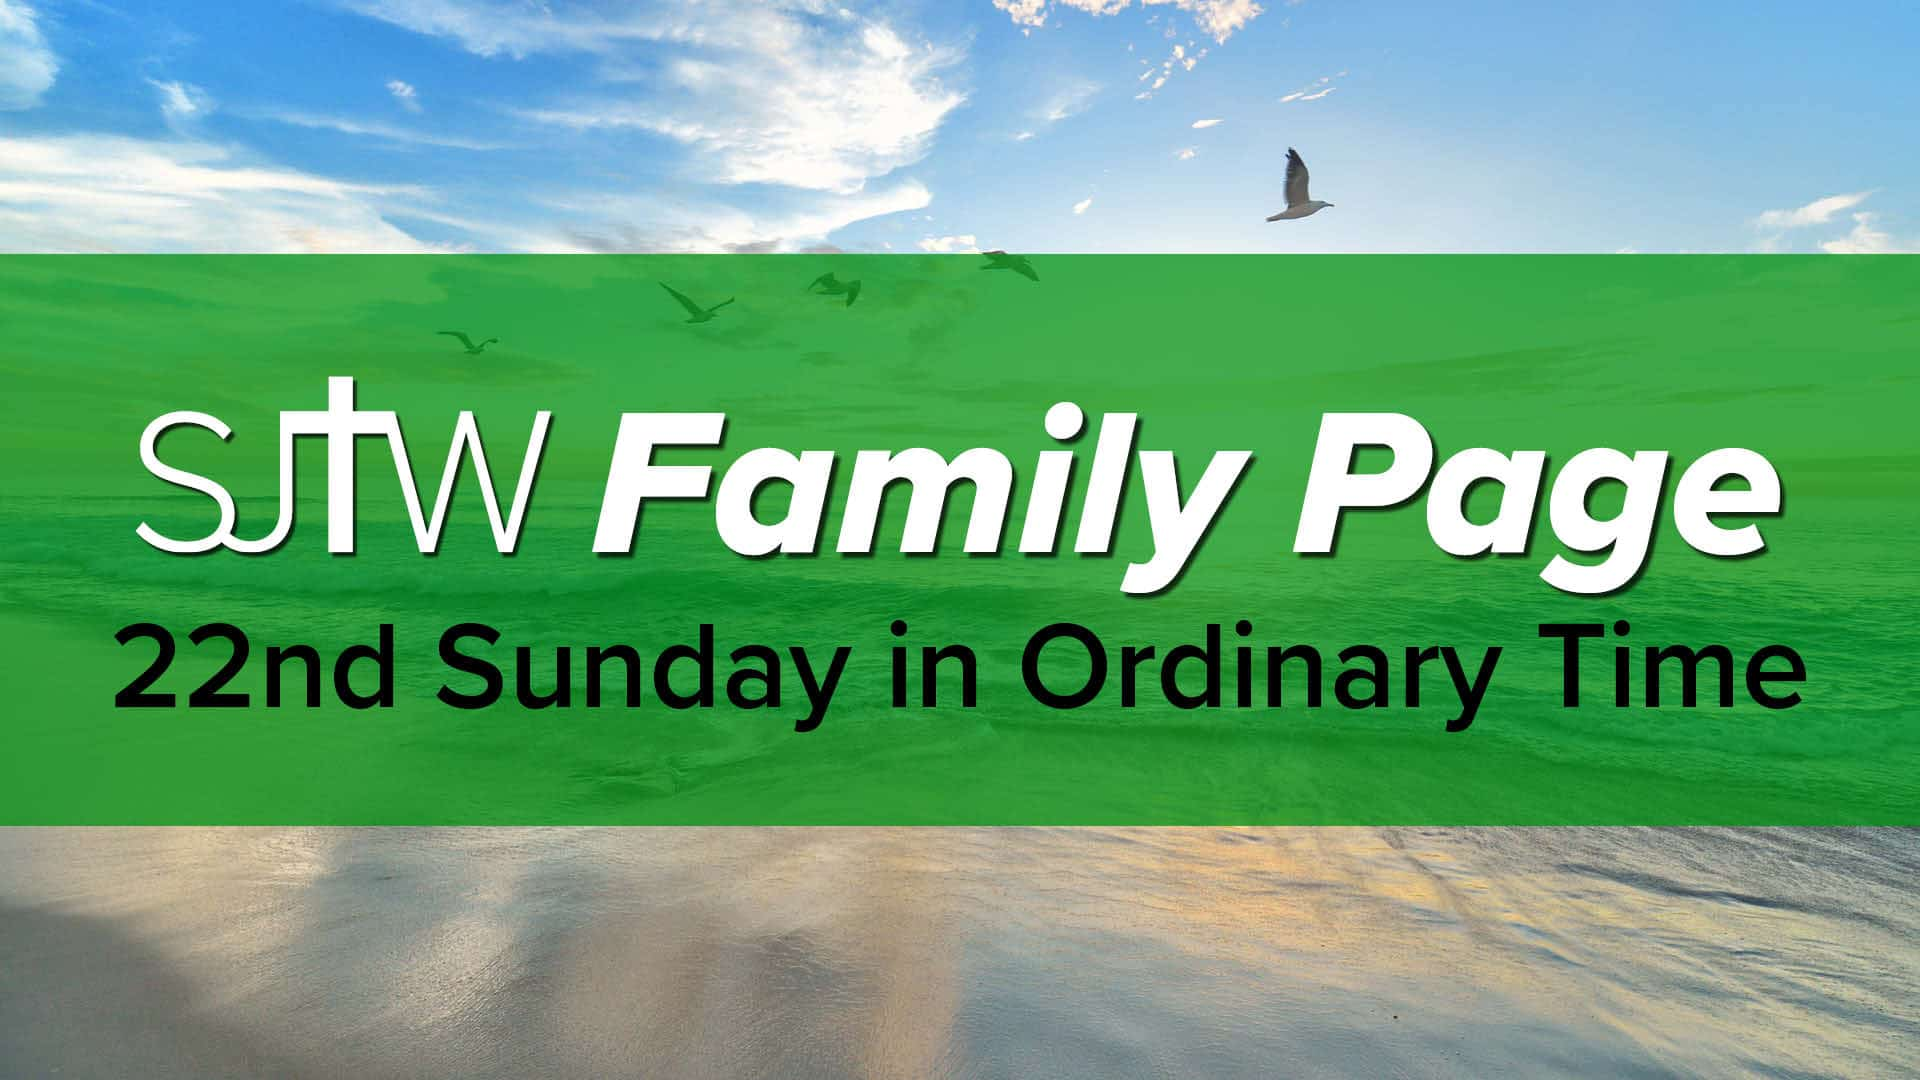 Family Page - 22nd Sunday in Ordinary Time